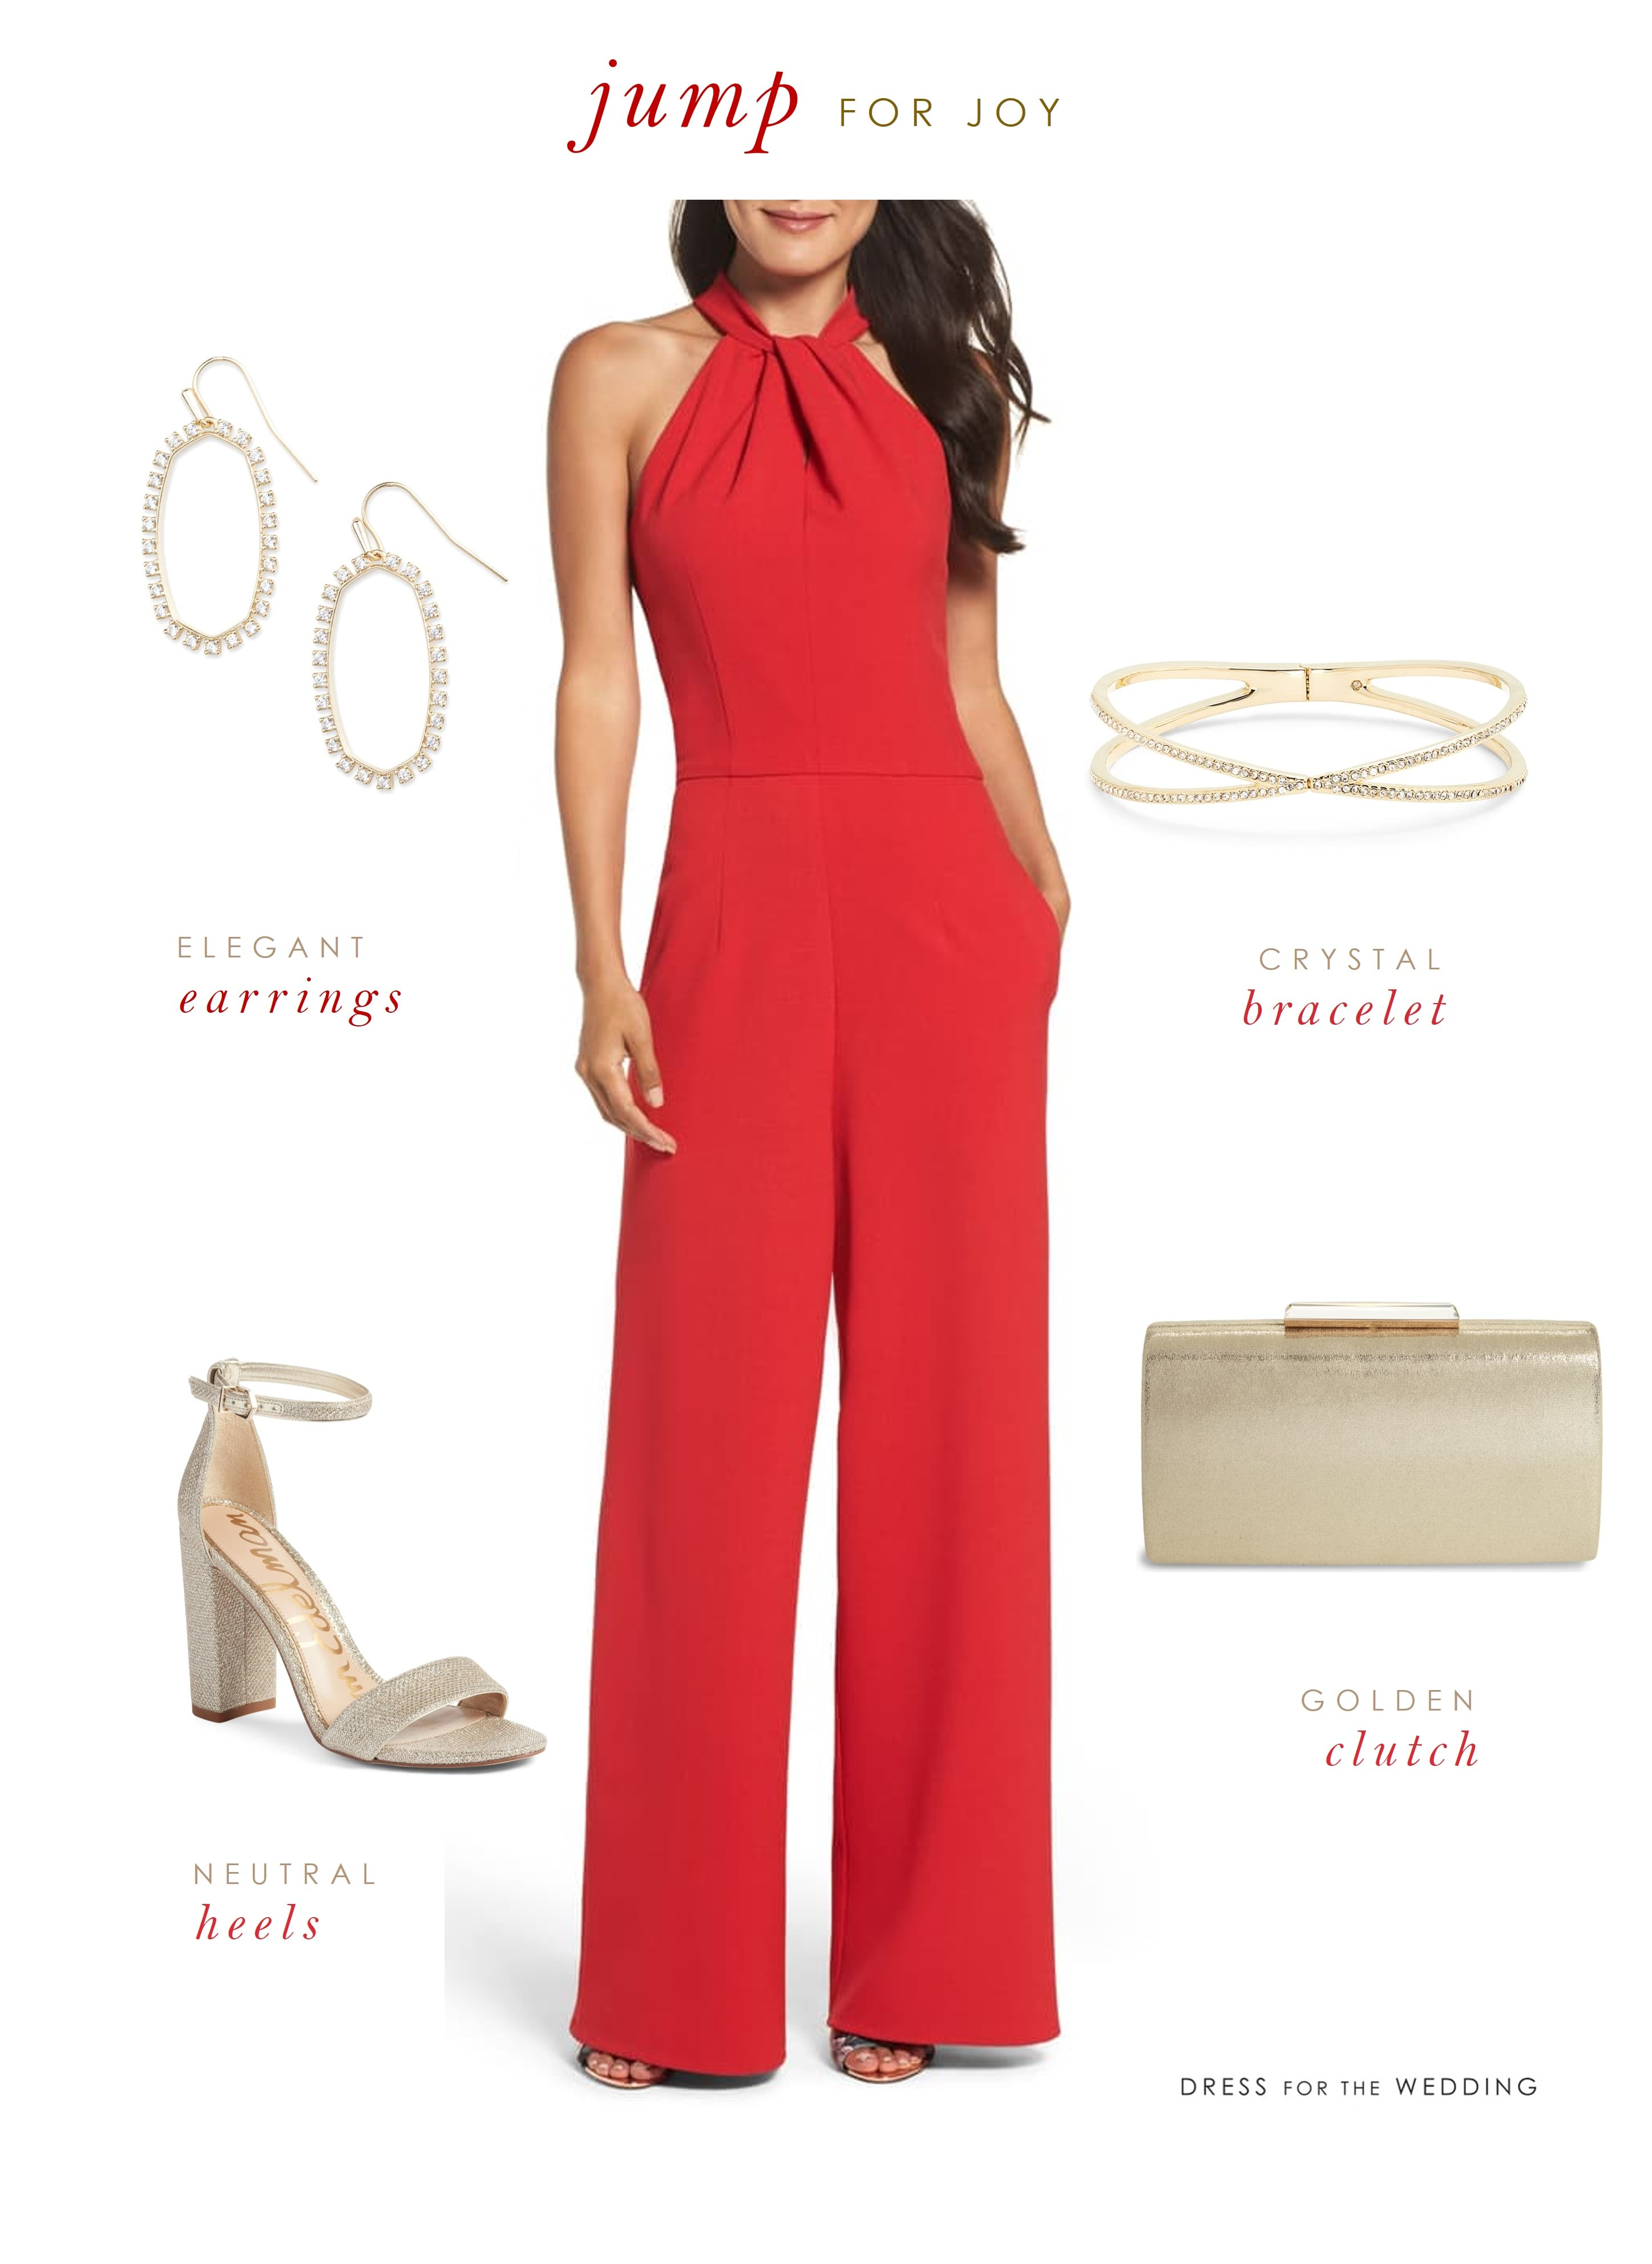 A holiday party outfit with a red halter jumpsuti and gold earrings bracelet, shoes and clutch